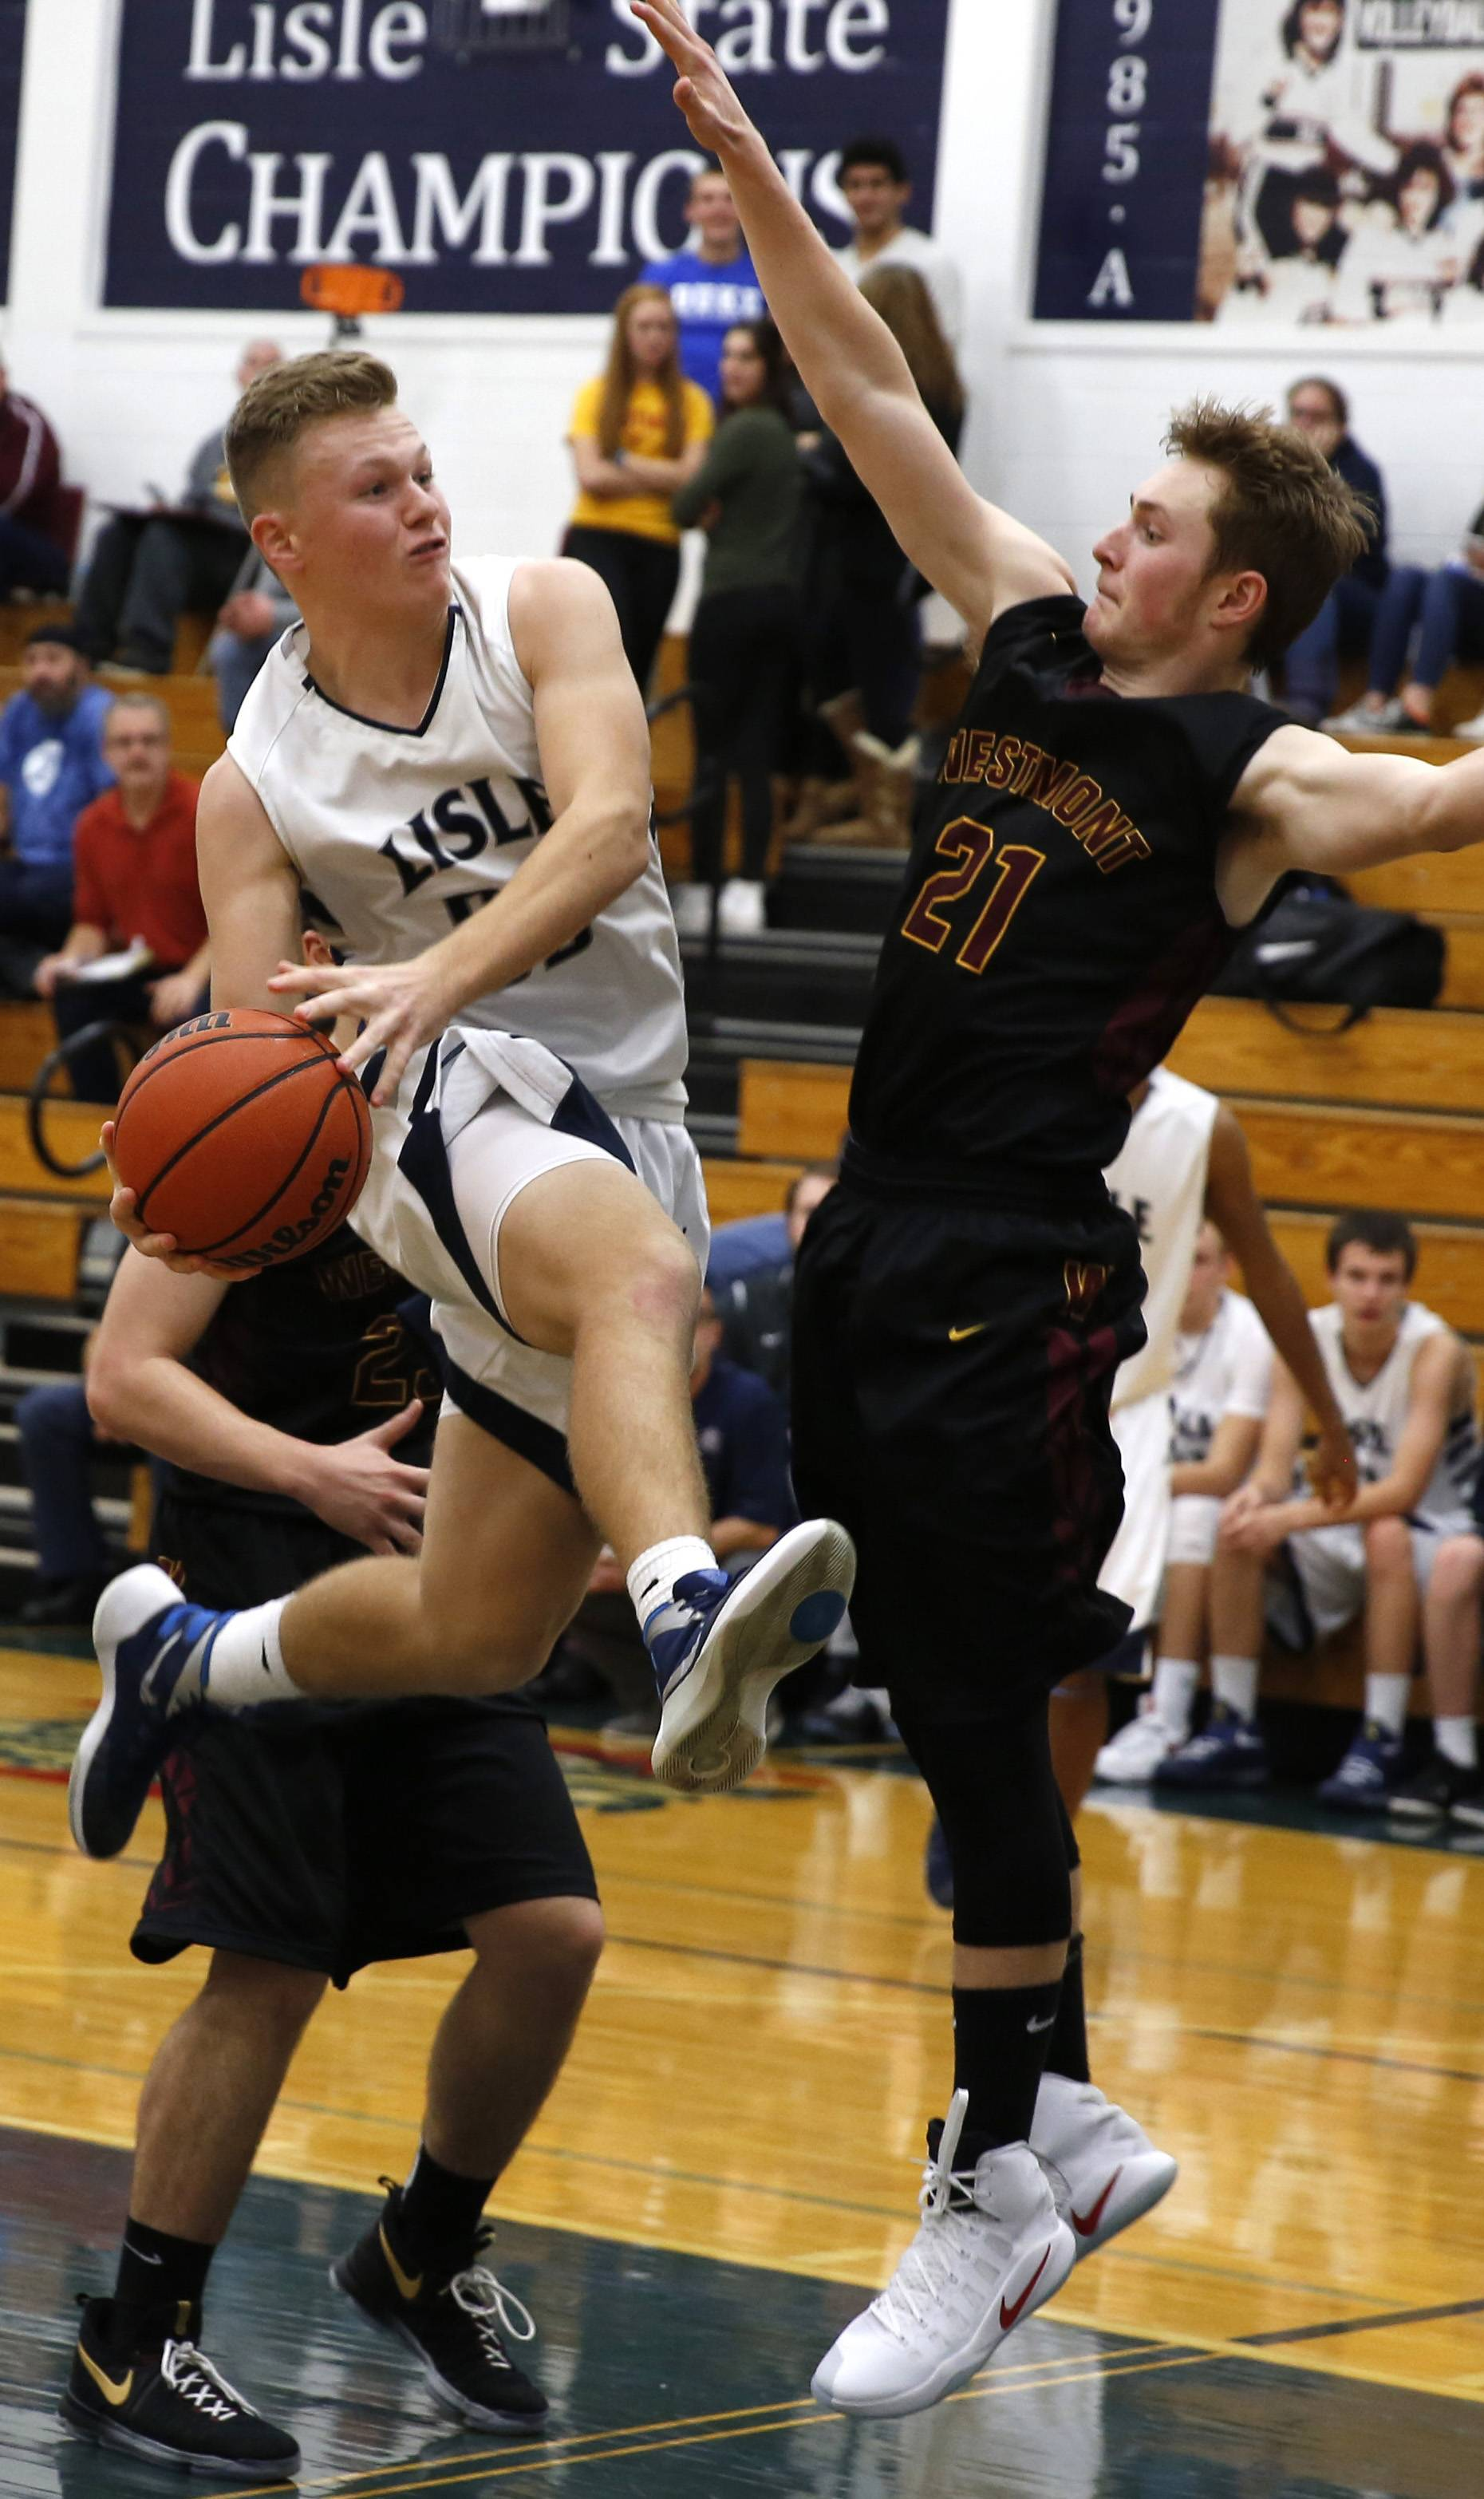 Lisle's Mark McGrath drives to the basket against Westmont's Michael Thompson (21) during the Lisle High School Thanksgiving Tournament.